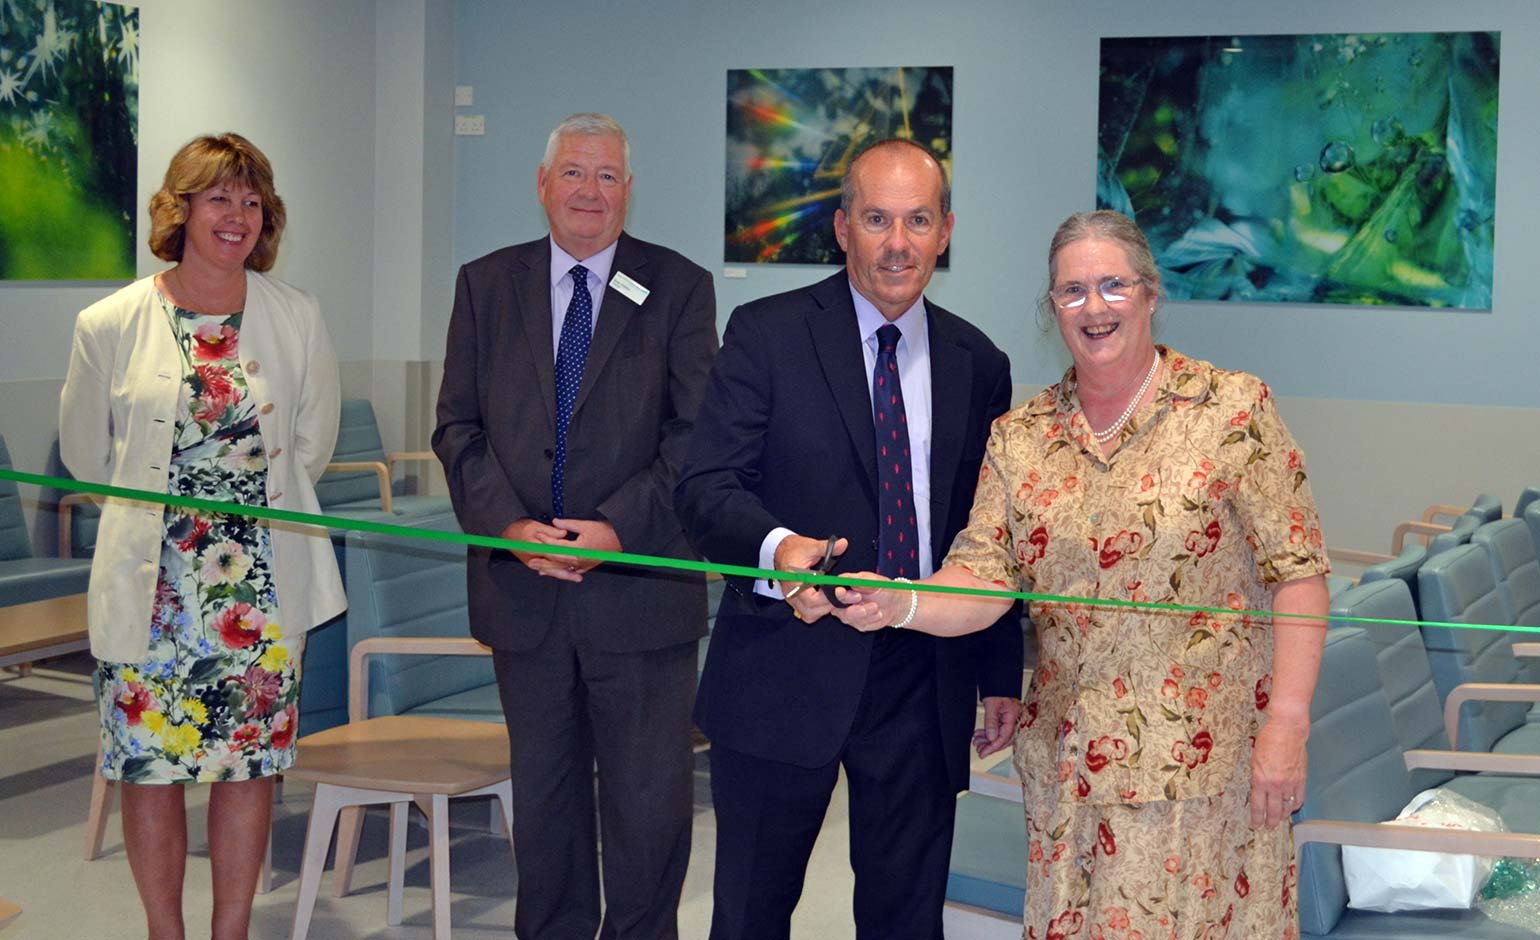 New state of the art Radiology Department opens at the RUH in Bath